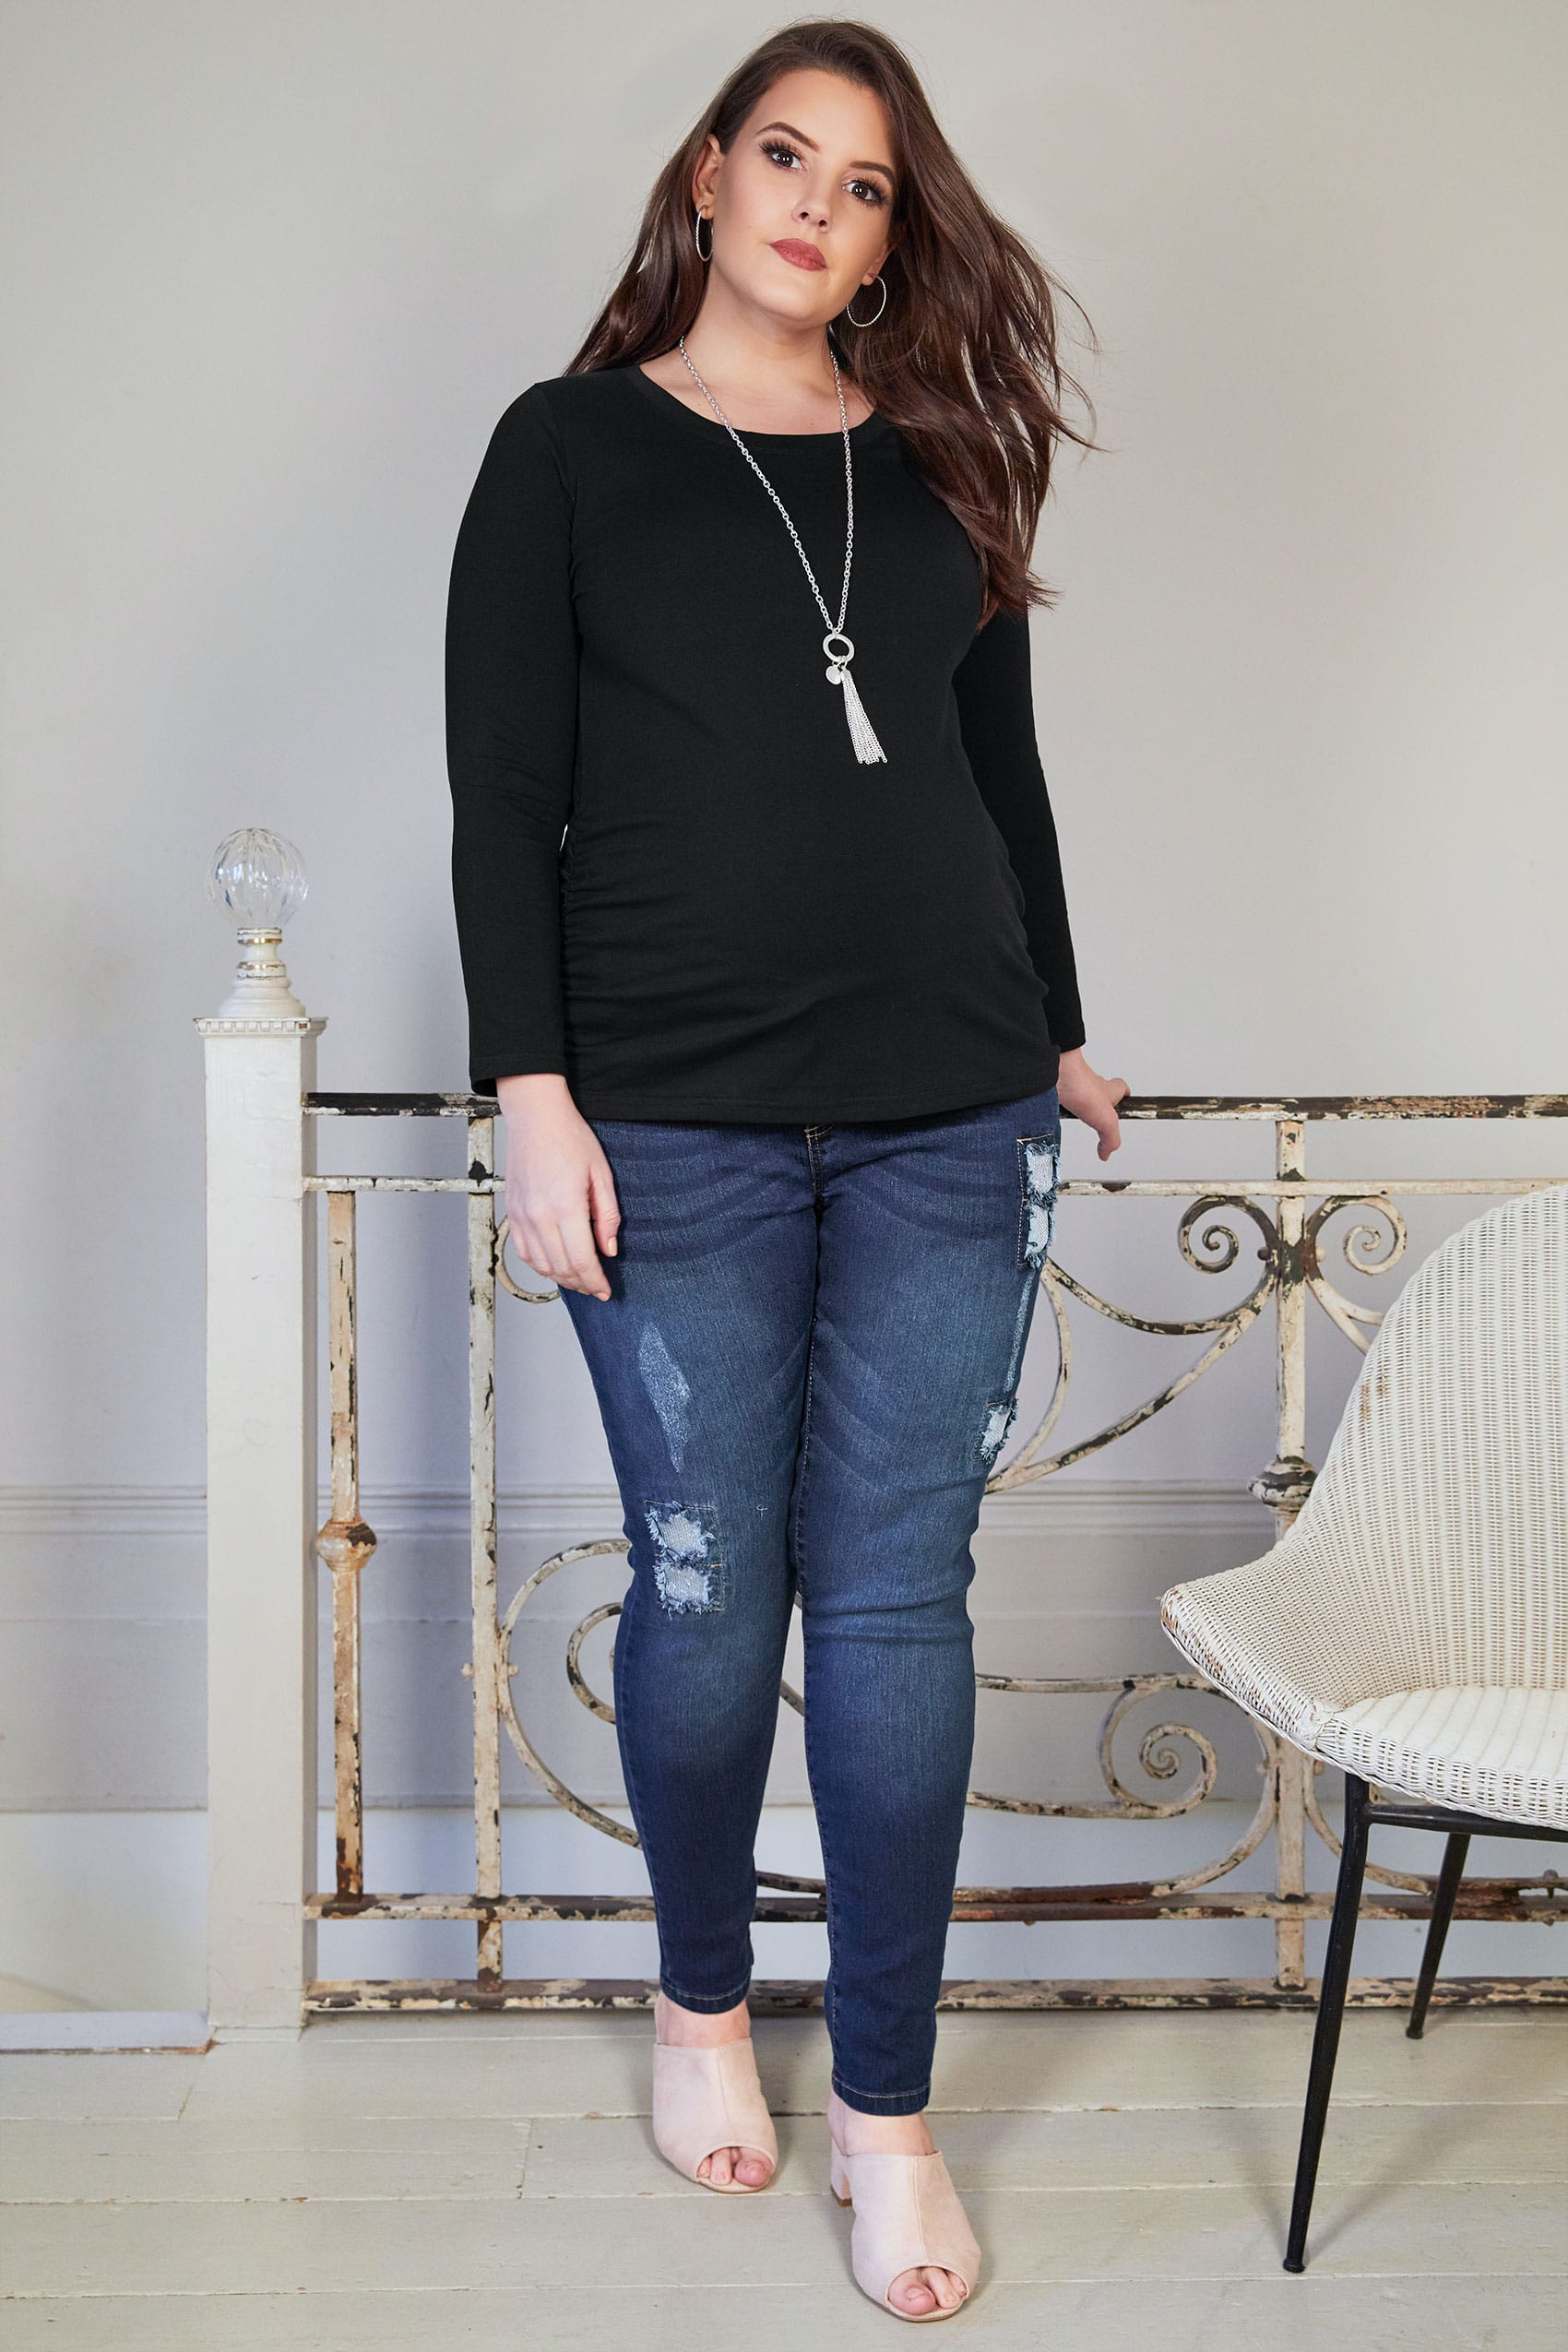 BUMP IT UP MATERNITY Black Cotton Long Sleeved Top Plus